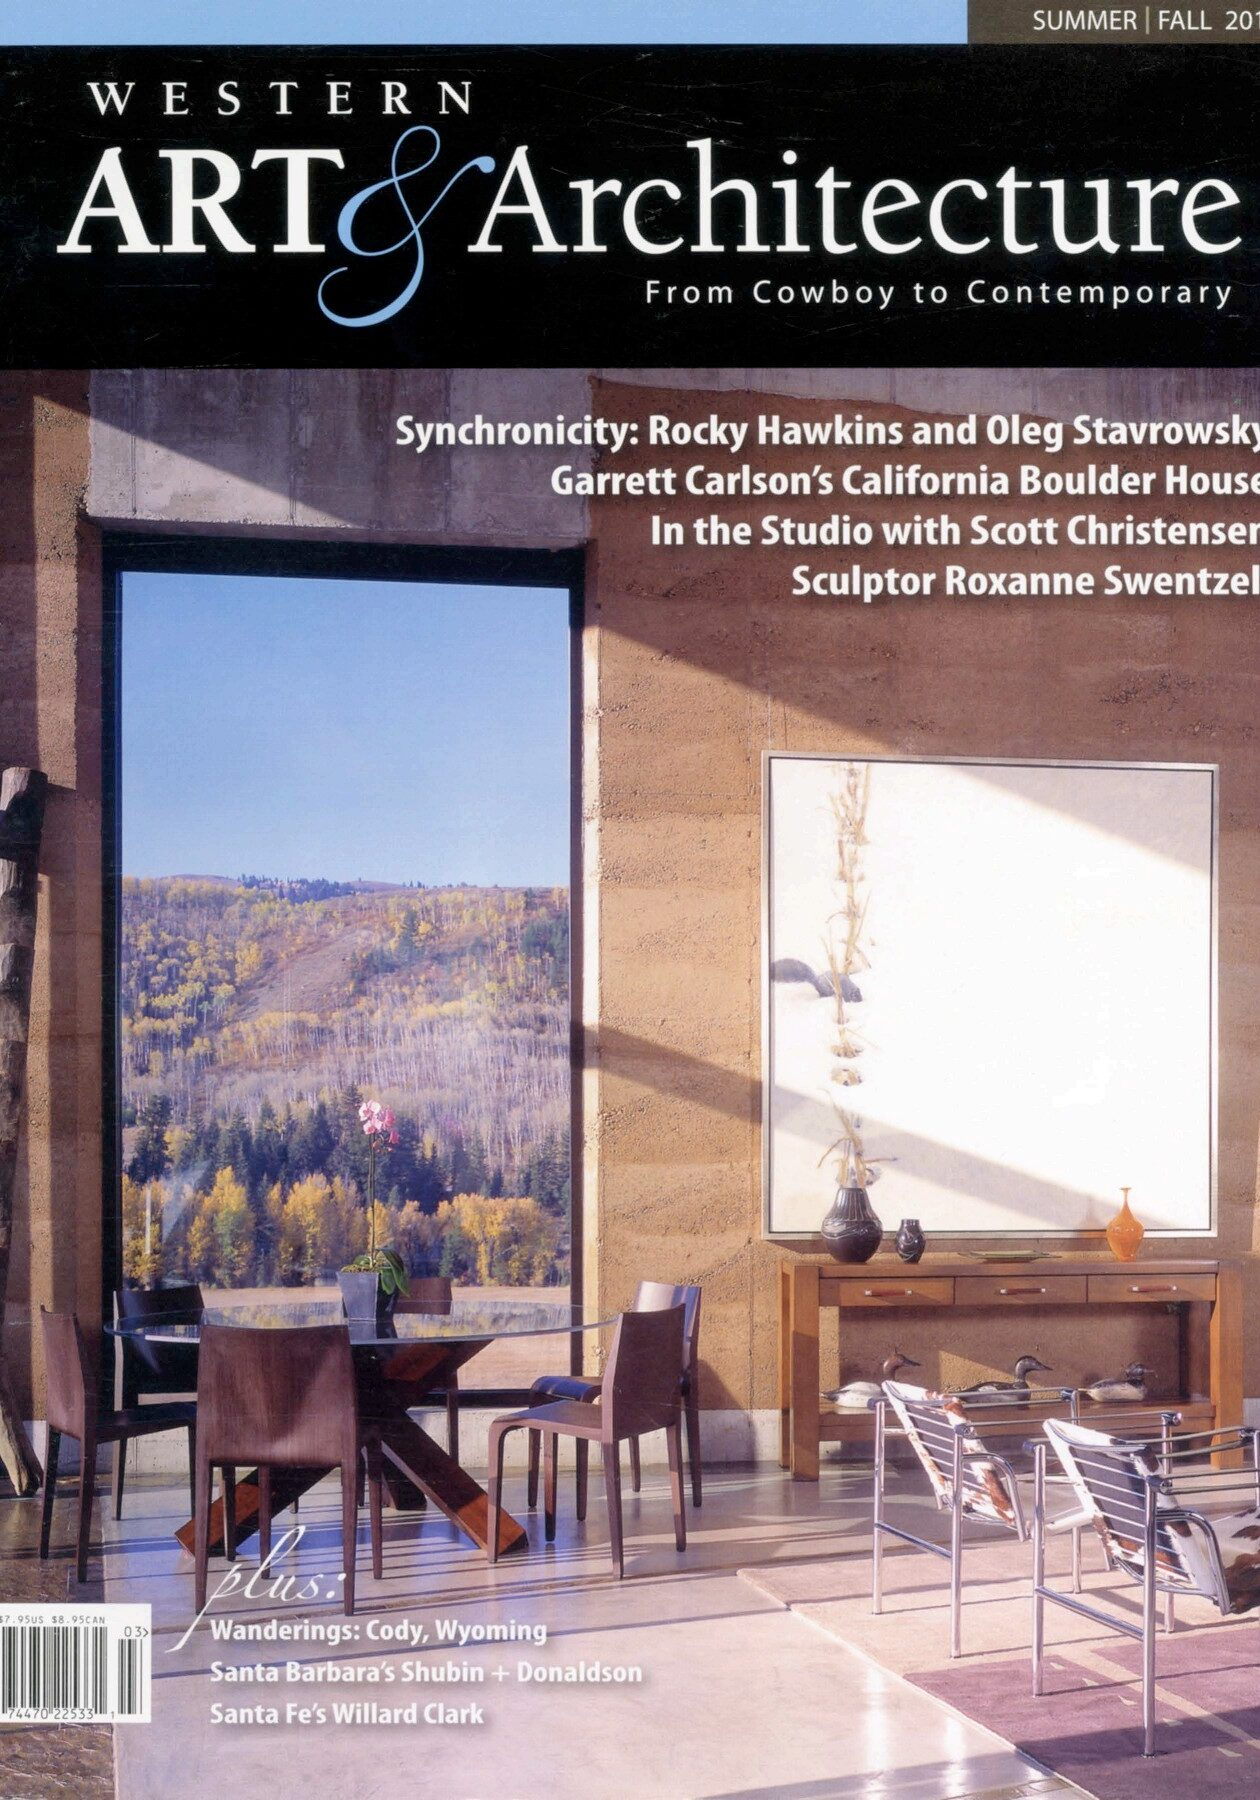 Western Art & Architecture - Summer/Fall 2010